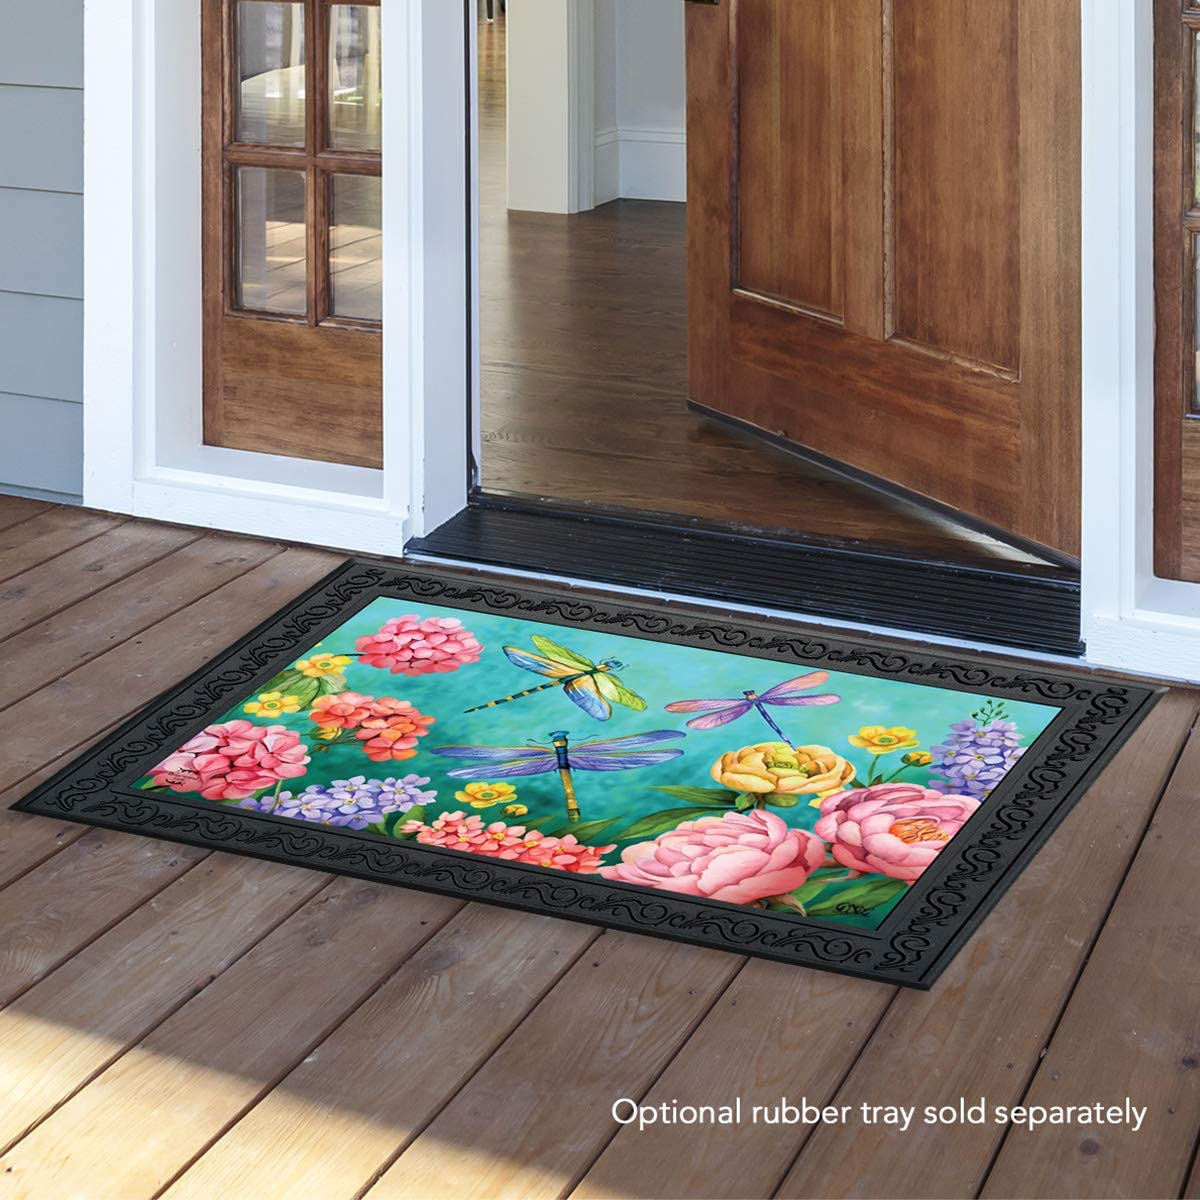 Briarwood Lane Dragonfly Garden Spring Doormat Indoor Outdoor 18 x 30